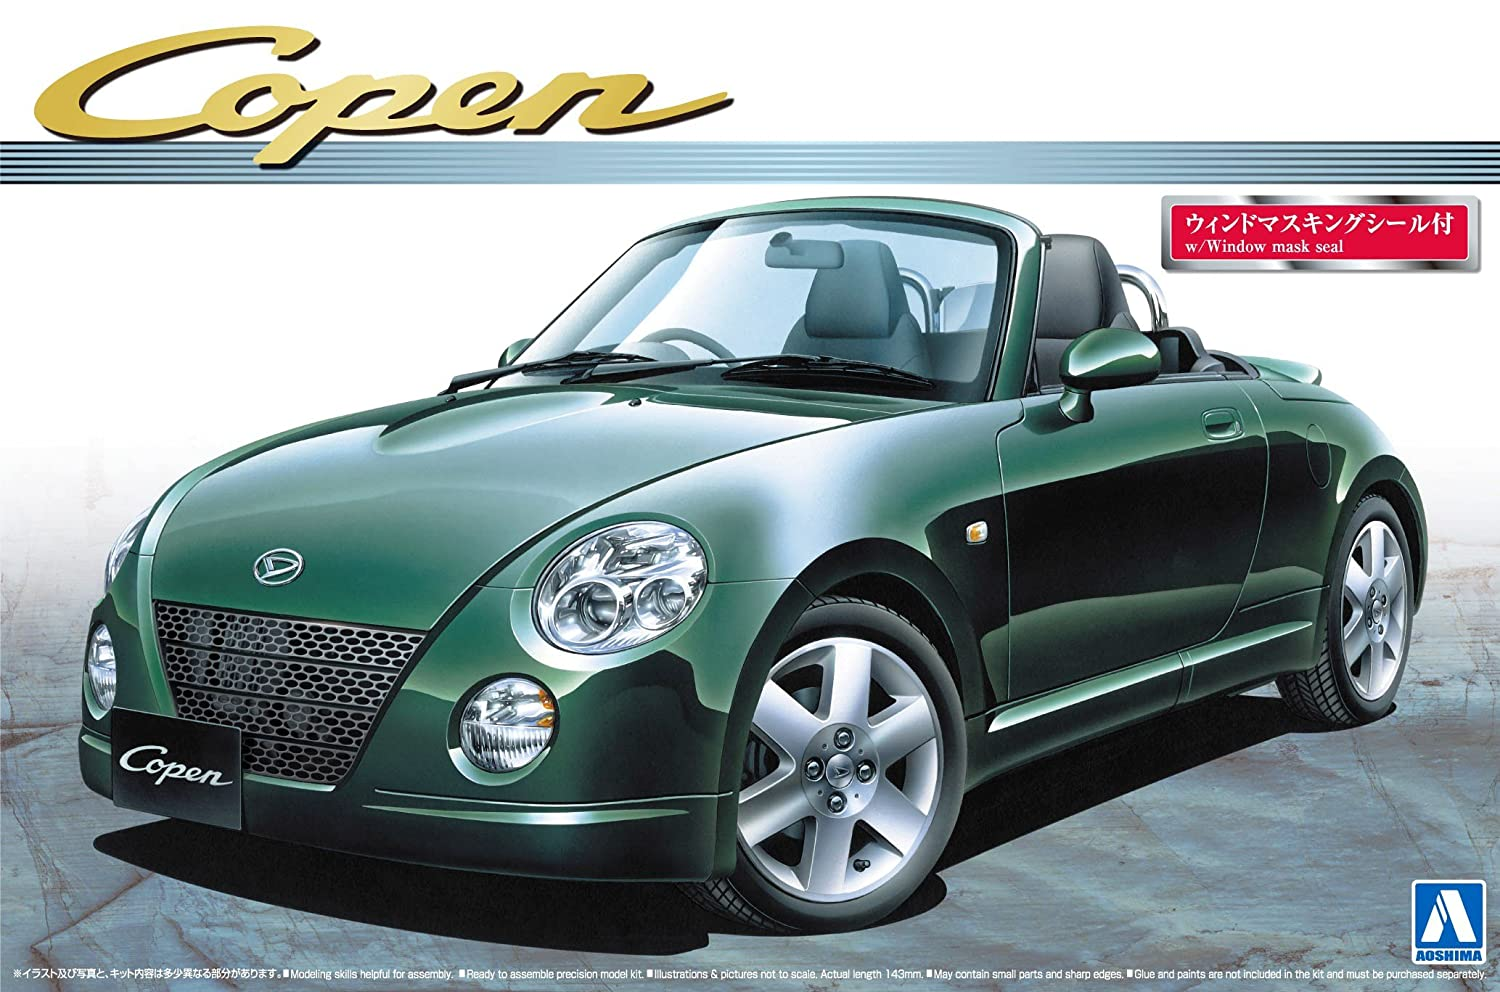 1/24 Le GT Series Meilleure voiture No.29 Copen Active Top